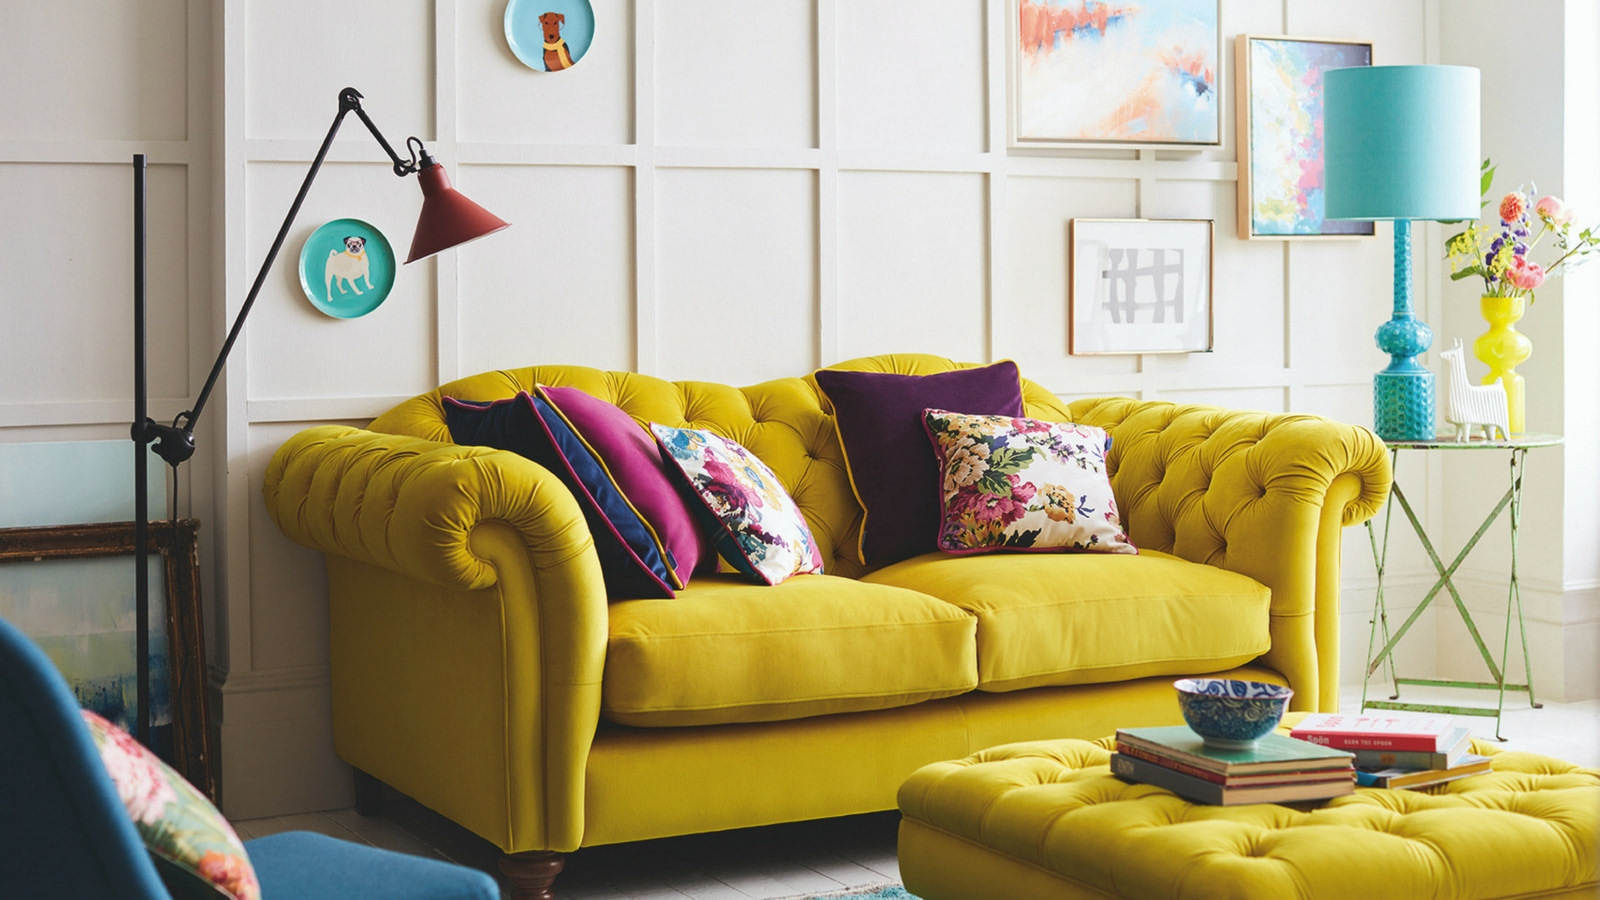 Joules X Dfs Sofa Collaboration It S A Danielle Life - Dfs Garden Furniture Clearance